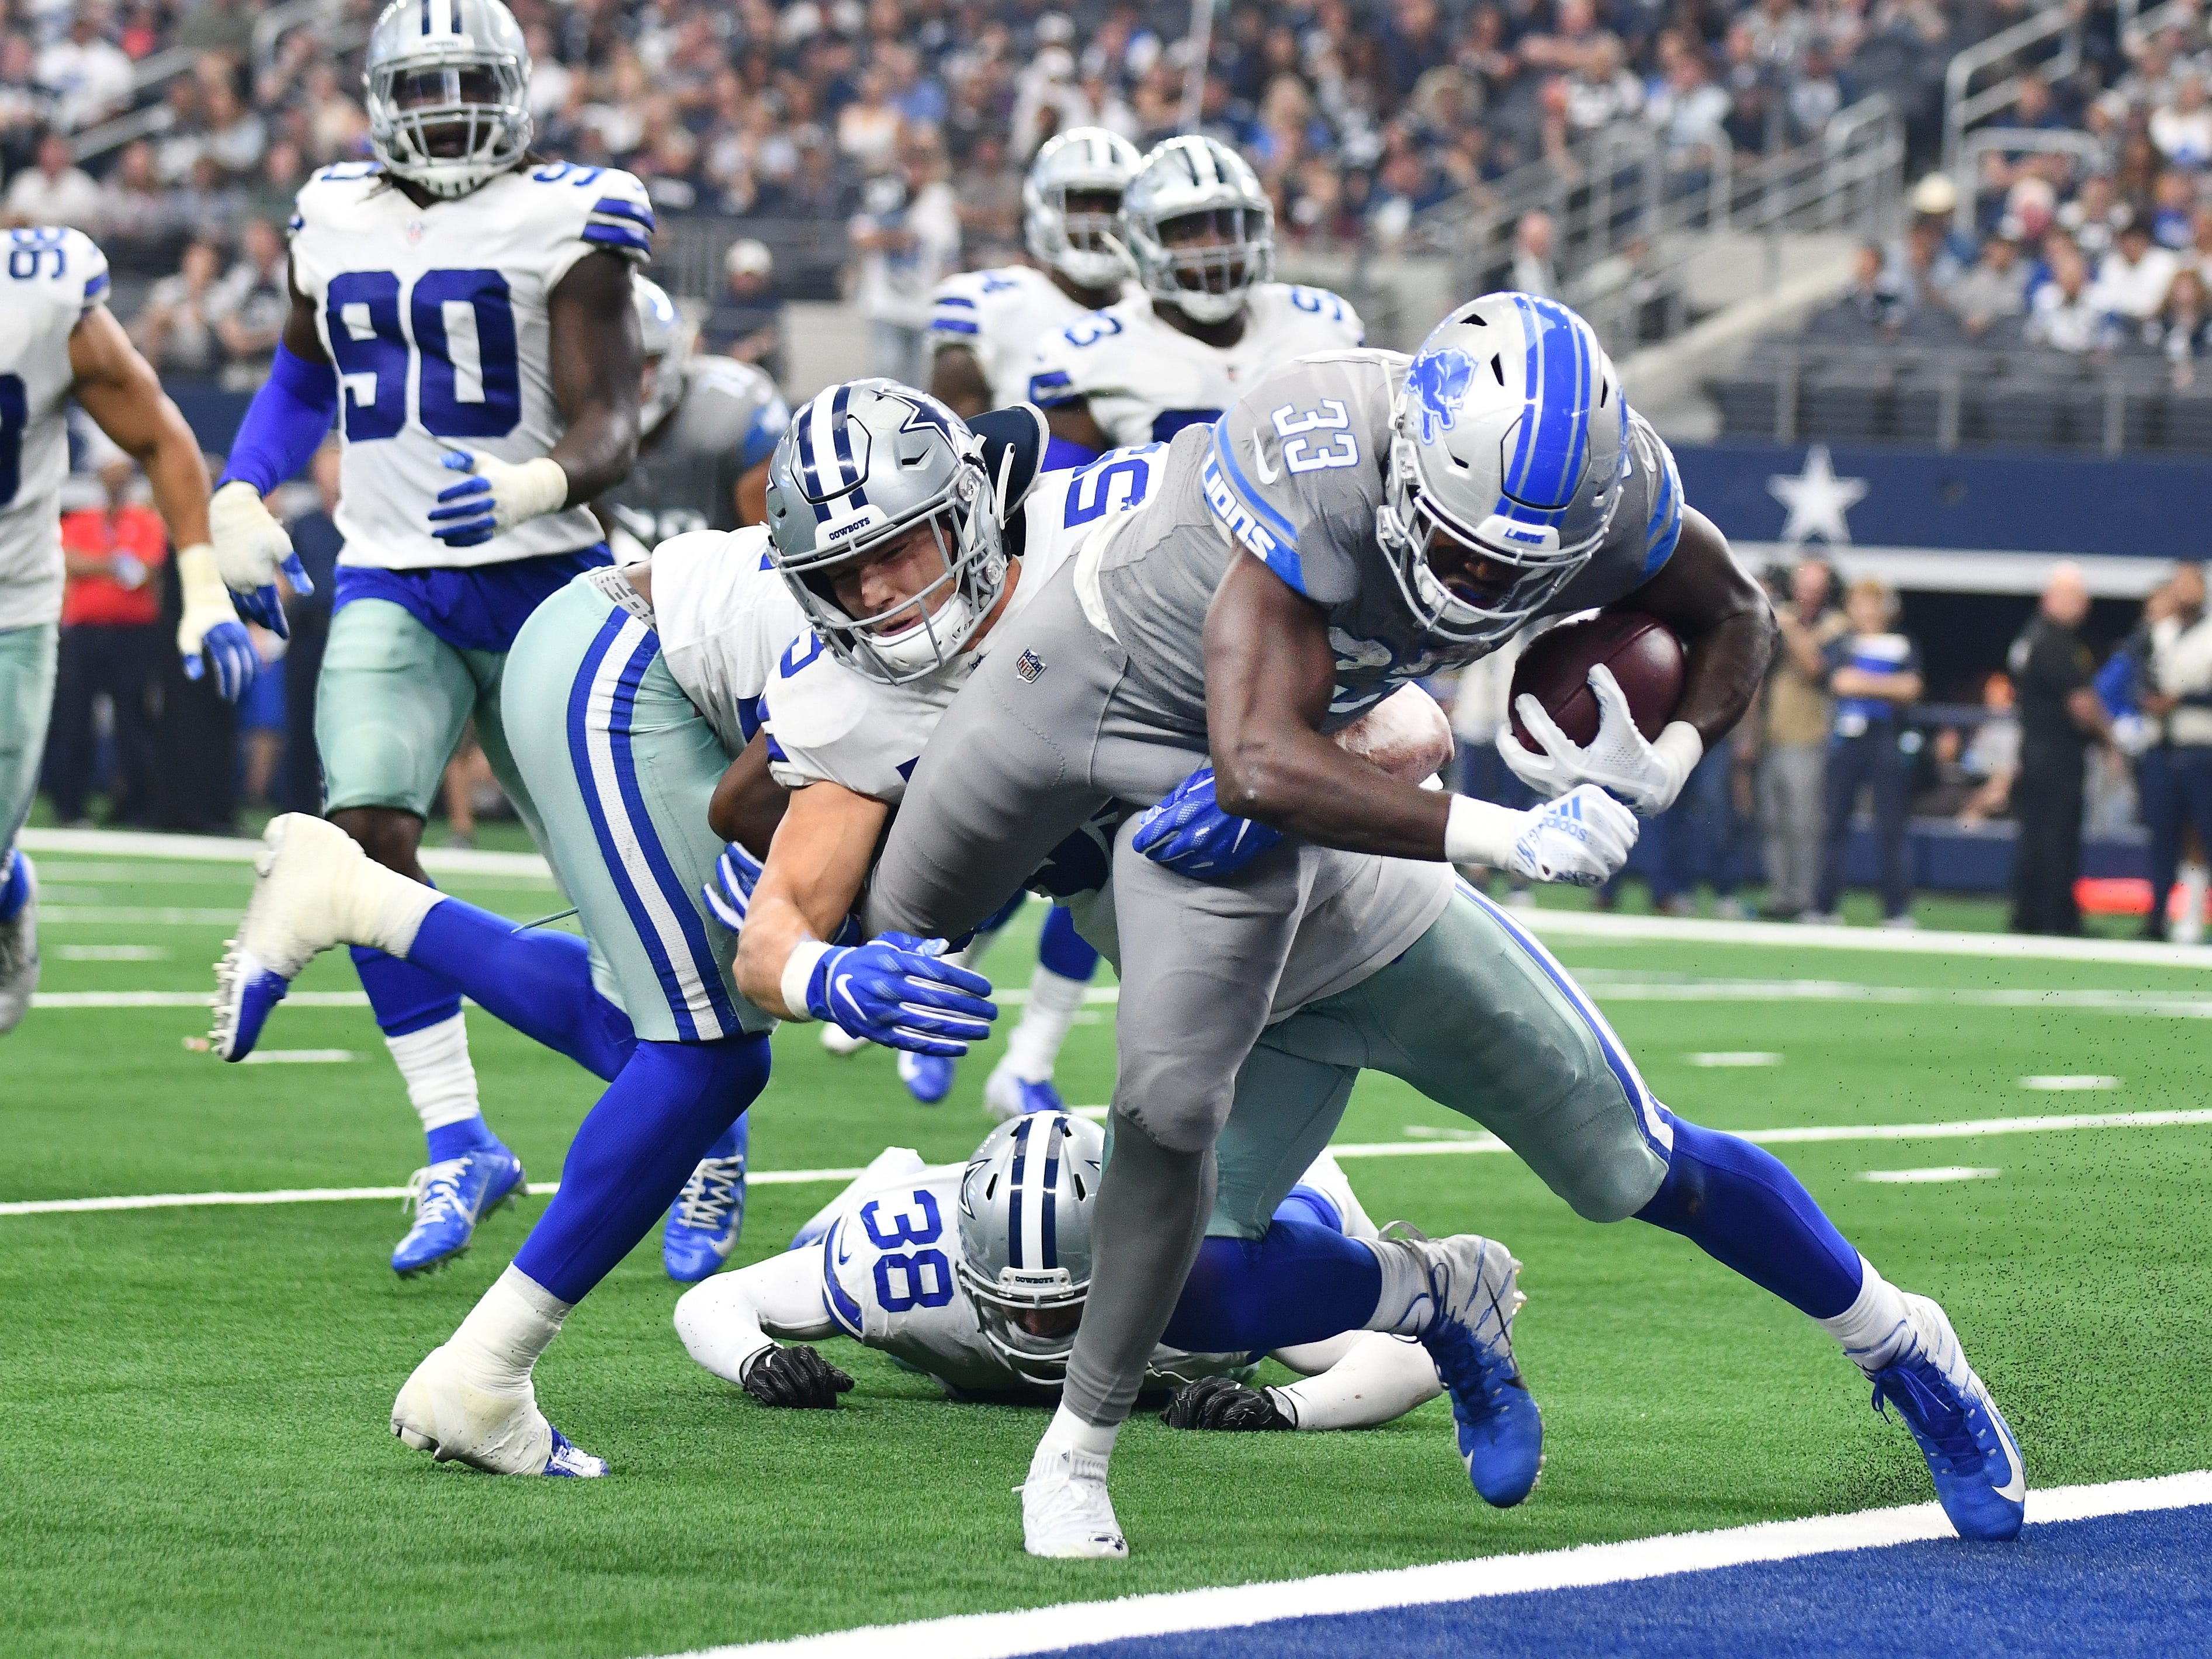 Cowboys' Leighton Vander Esch can't stop Lions rookie running back Kerryon Johnson from getting into the end zone for a touchdown in the fourth quarter.